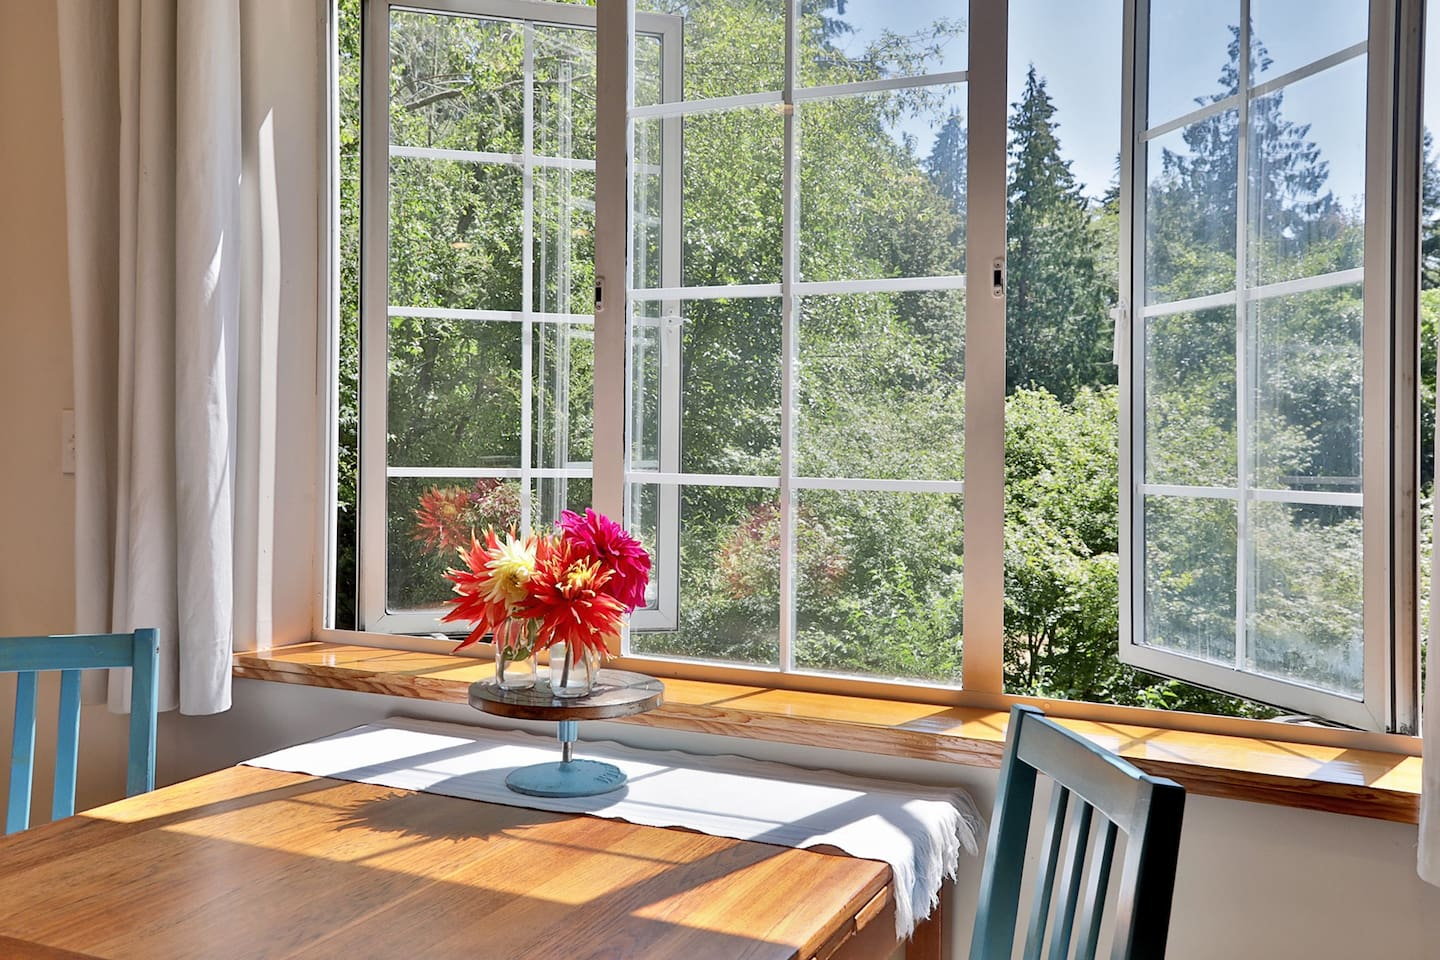 Looking out the window, there is a large yard. In the distance, a partial view of the Lapis Lane Cabin can be seen. The Cabin can be rented along with the Guesthouse for larger gatherings.